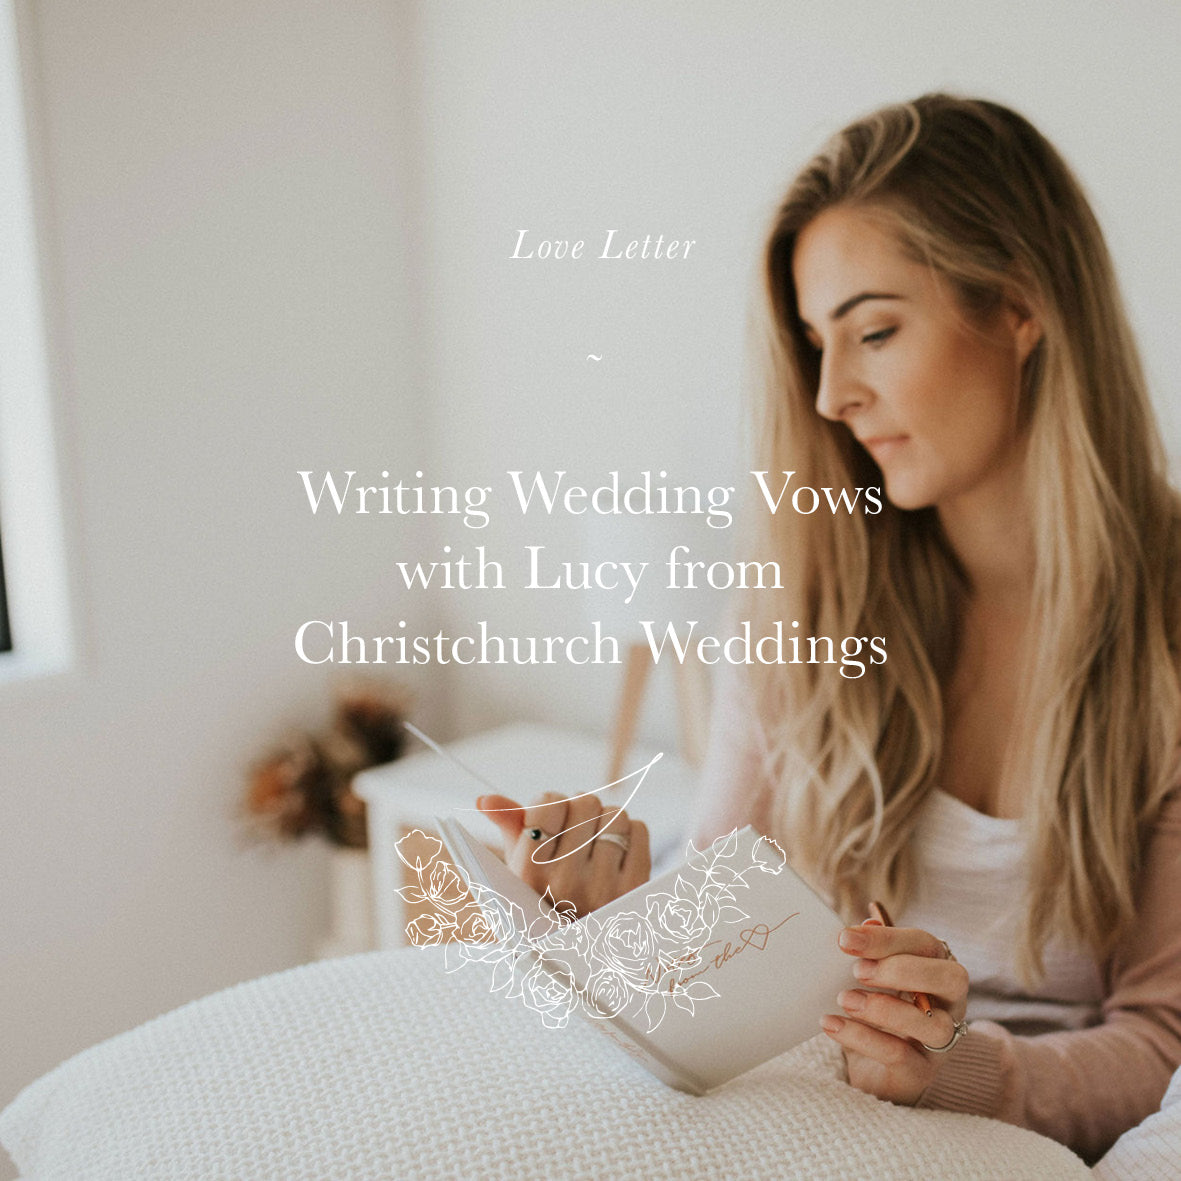 Vow Writing Tips With Lucy From Christchurch Weddings